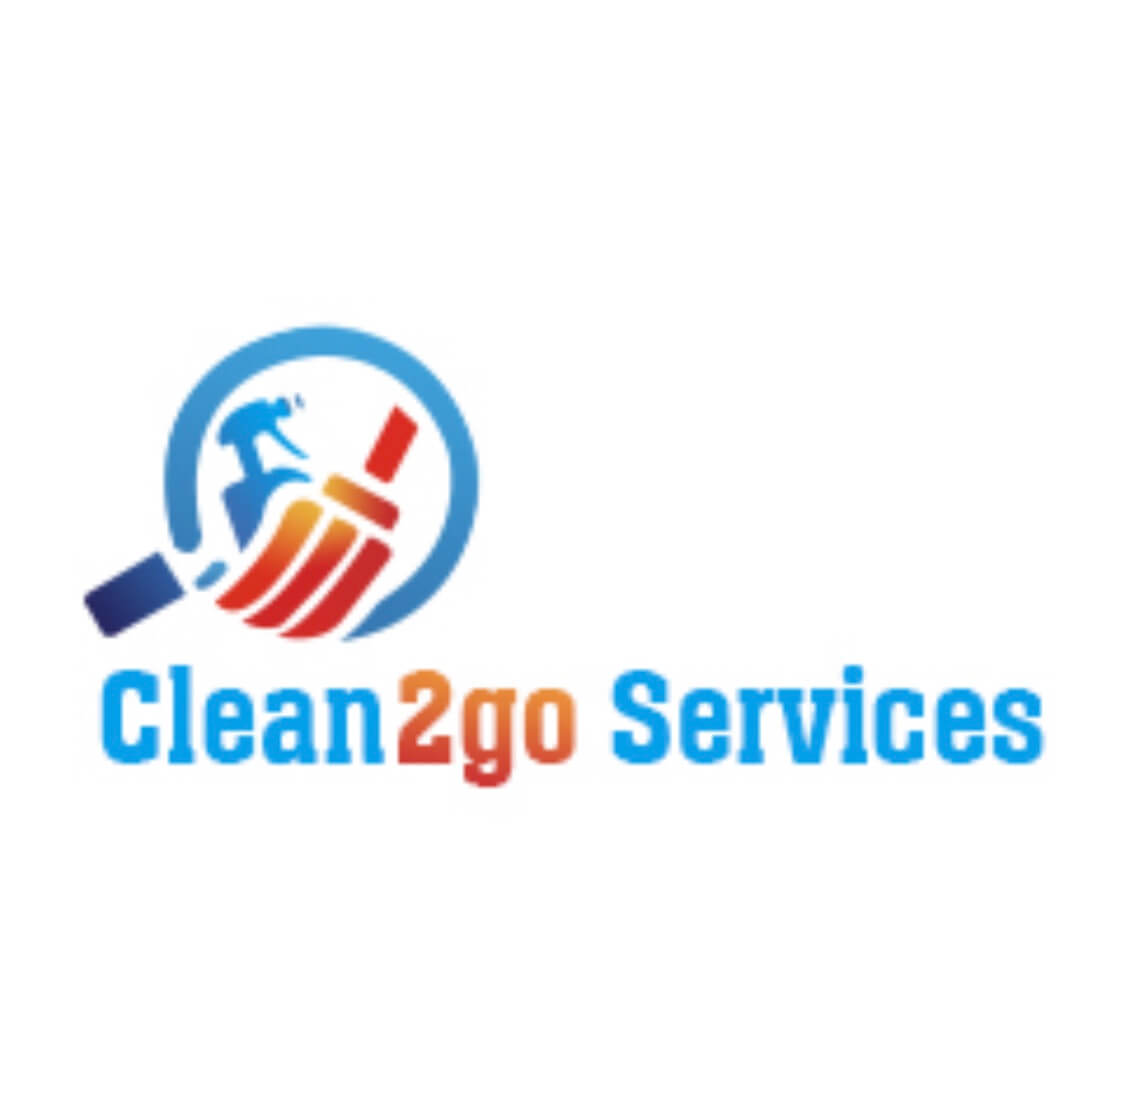 Clean2go Services